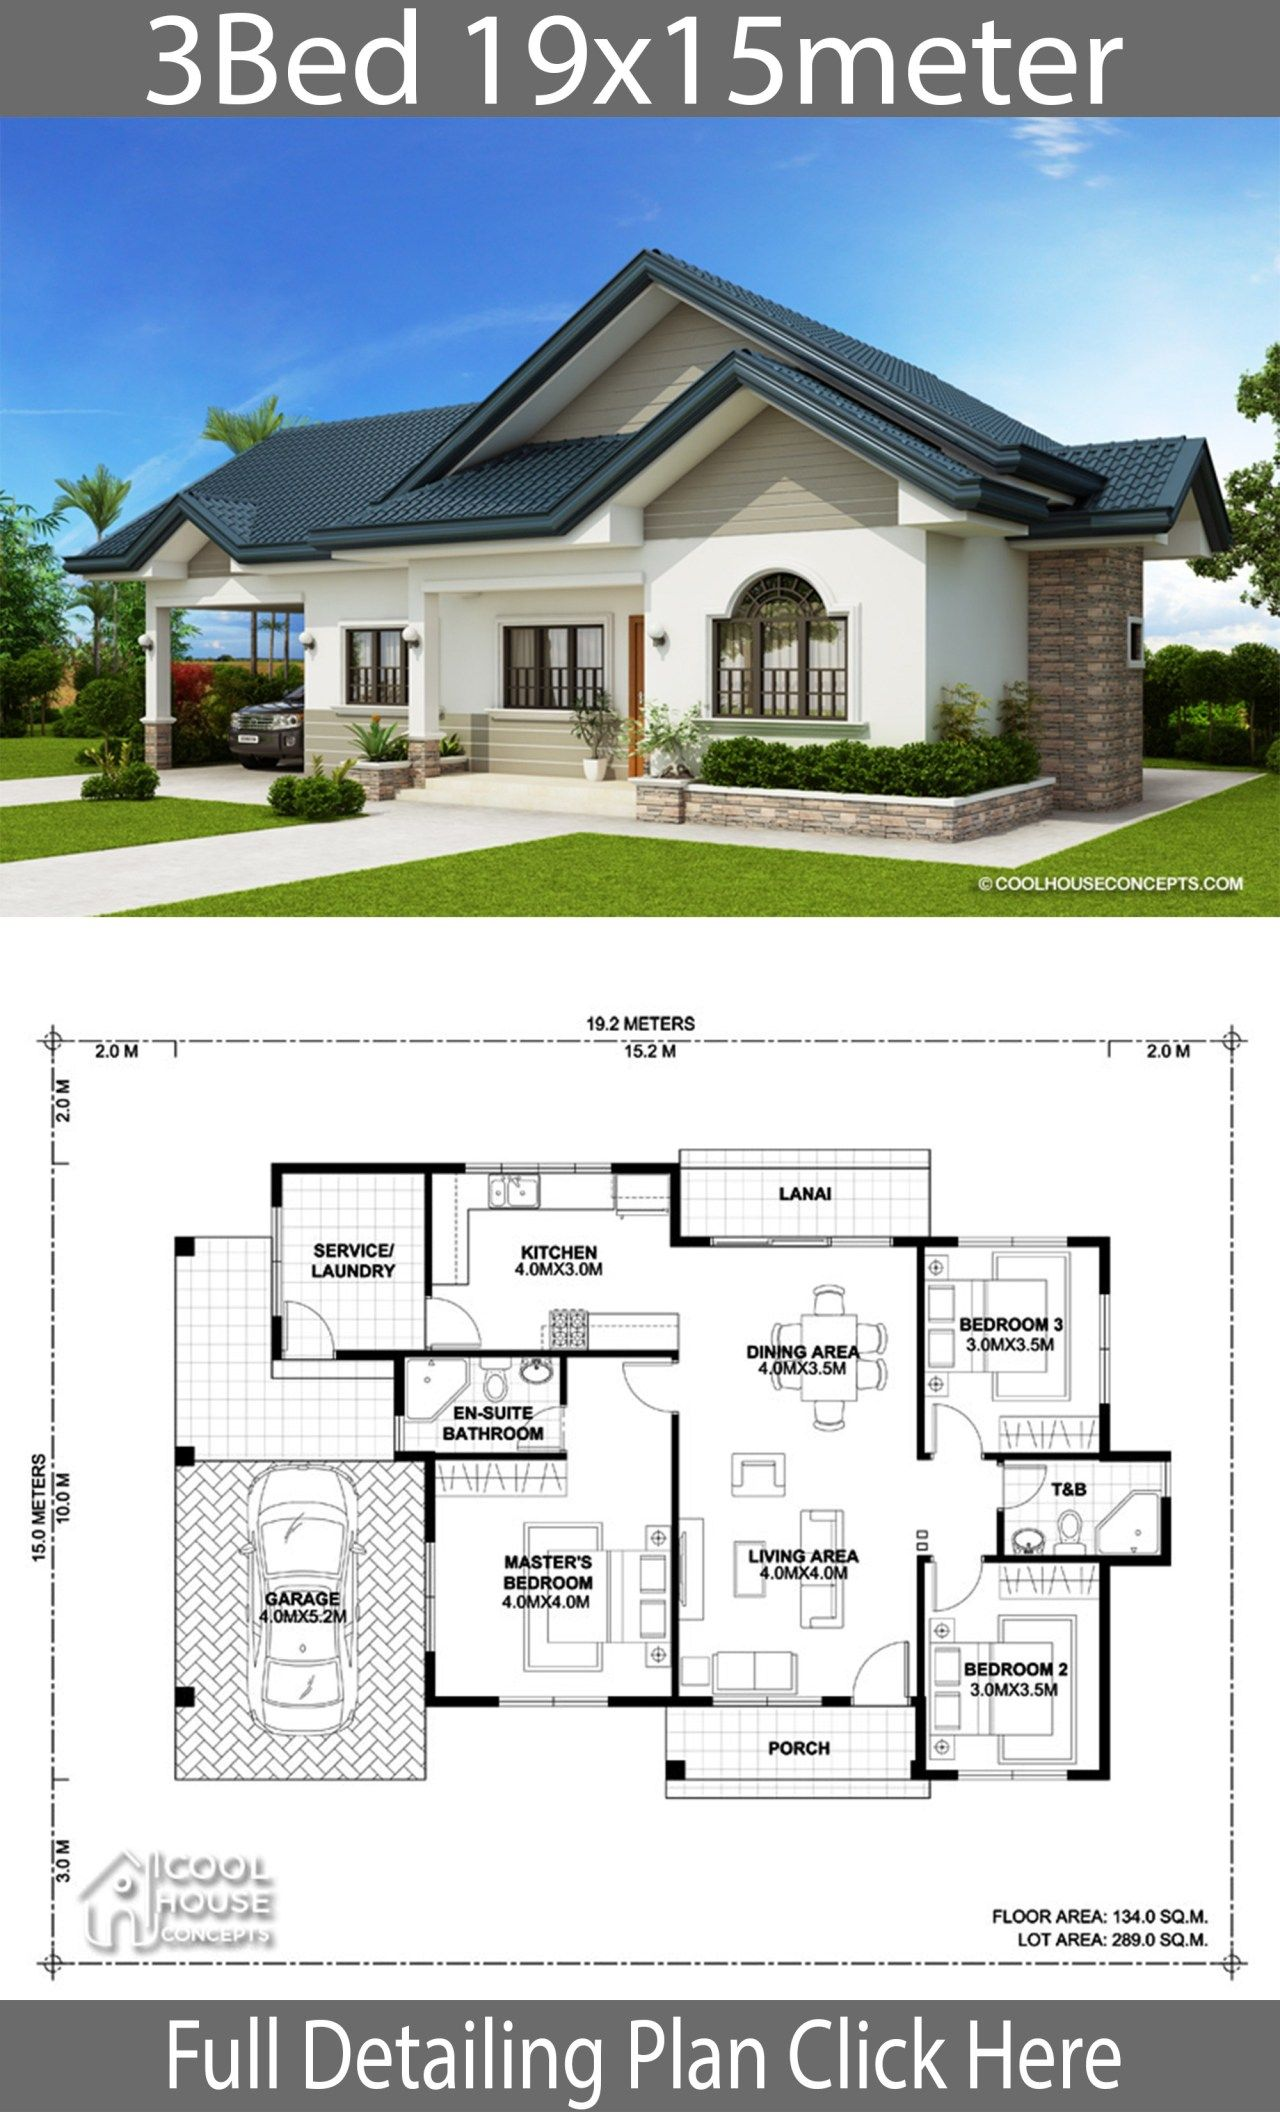 Home Design Plan 19x15m With 3 Bedrooms Home Ideas Beautiful House Plans Modern Bungalow House House Plan Gallery